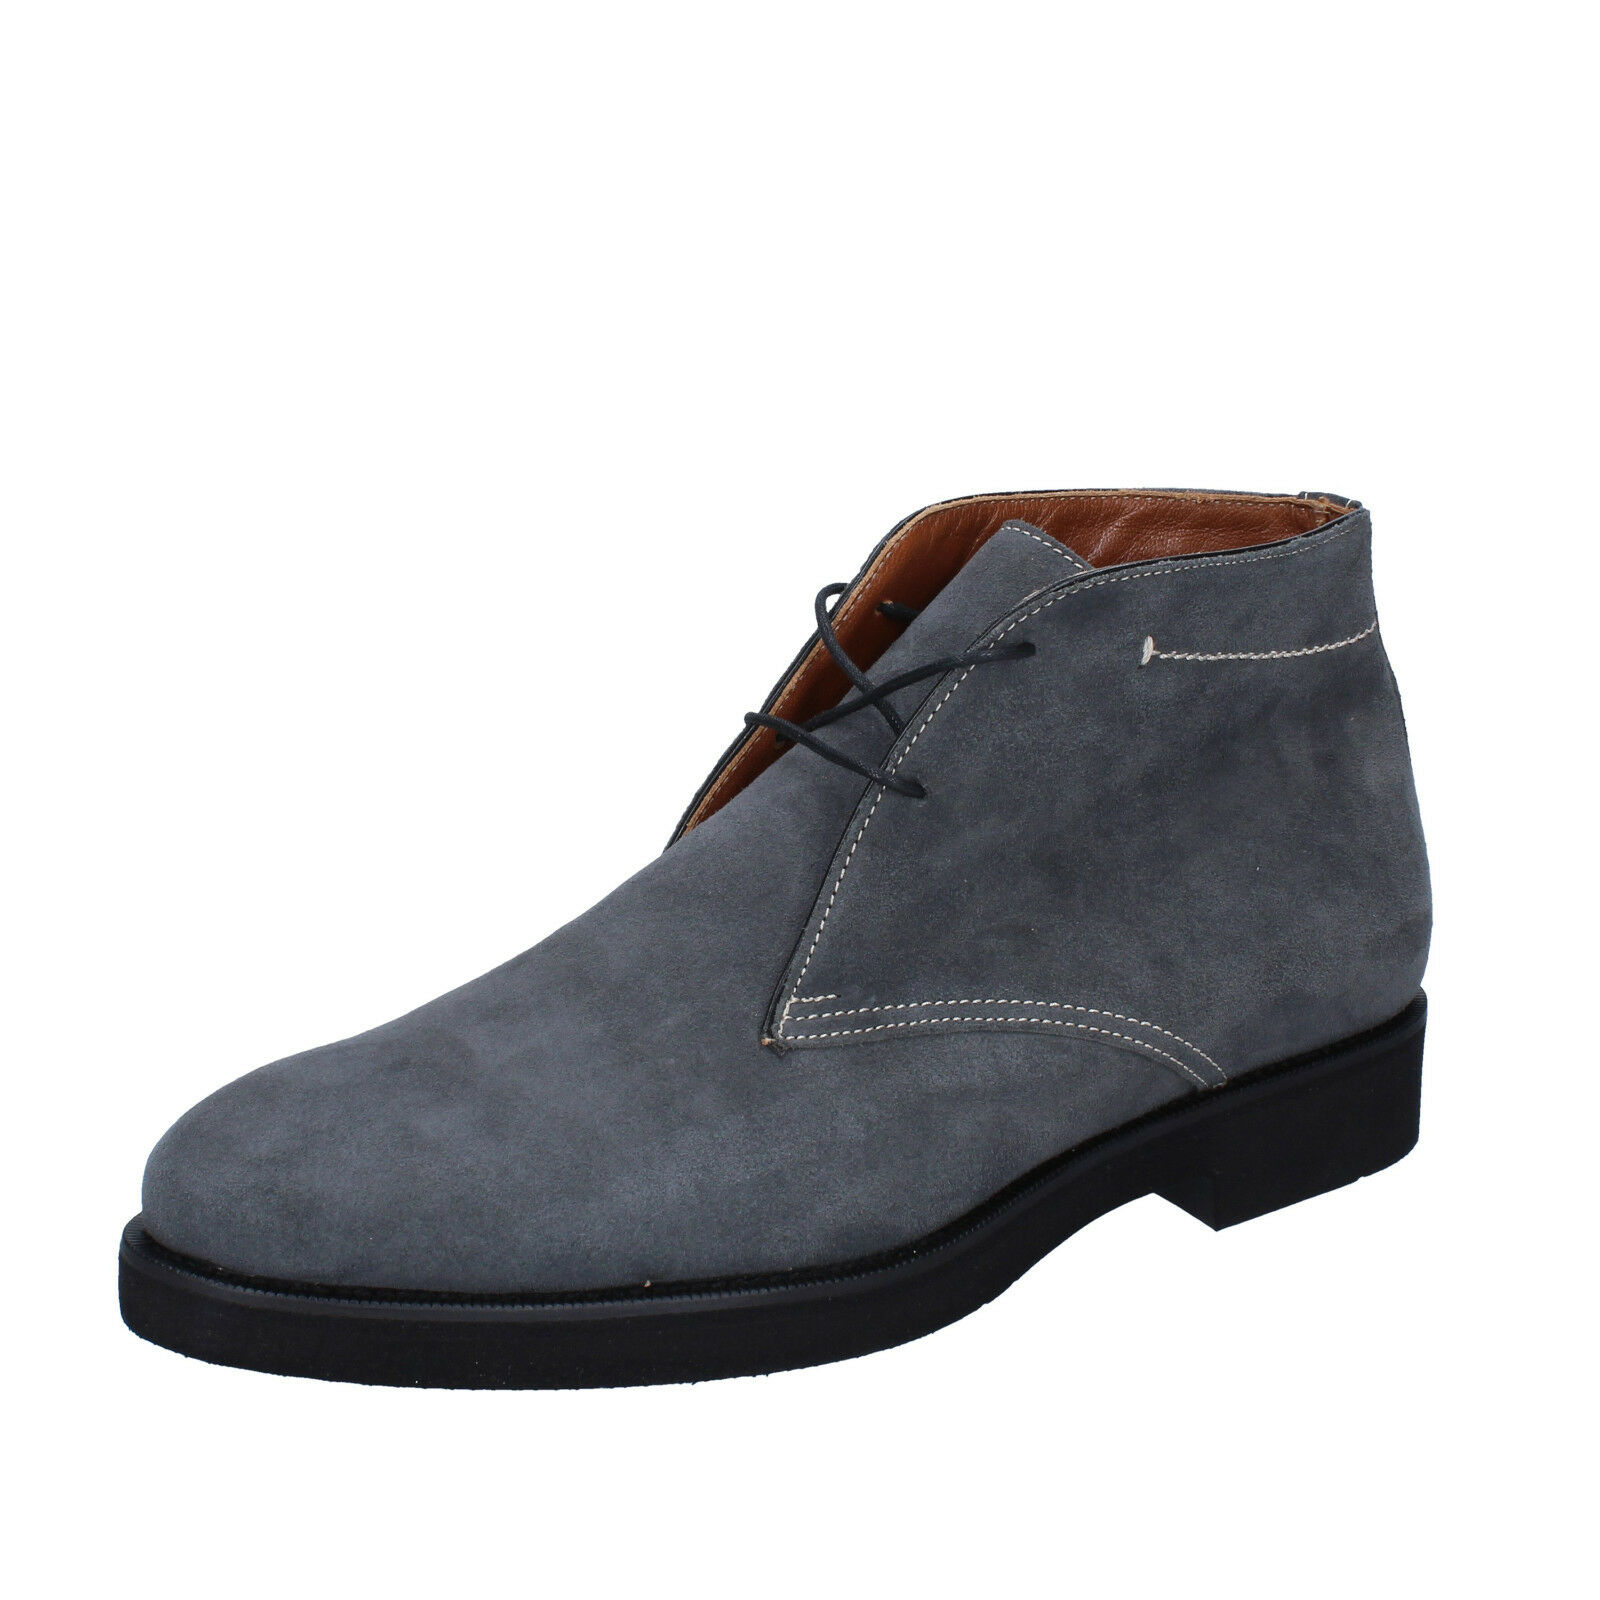 men's shoes ALEXANDER 7 () desert boots gray suede BY453-40